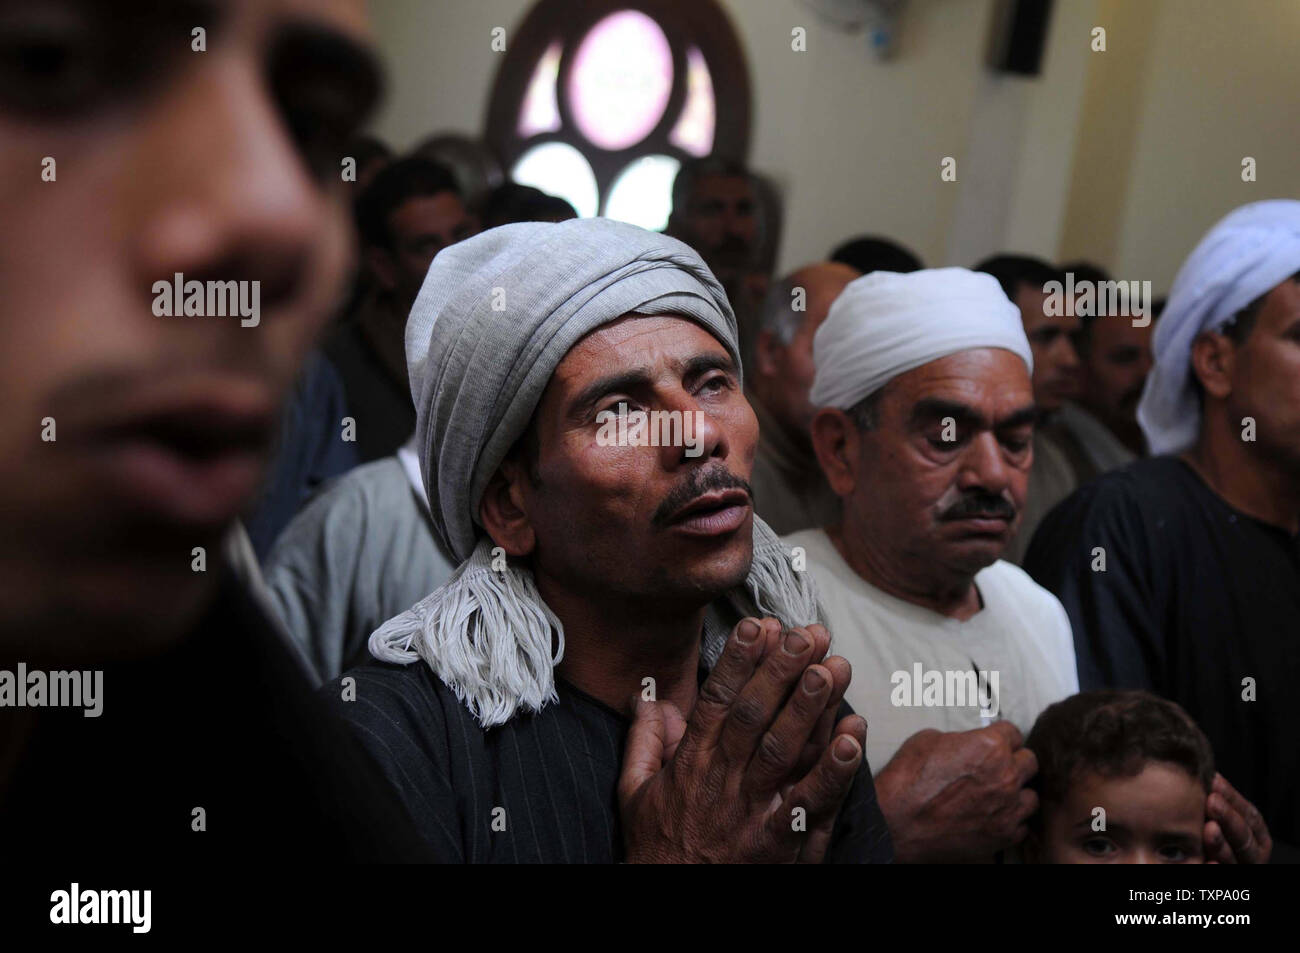 Christian Egyptian Coptics attend the first Mass in Two Martyrs Church on Sunday April 17, after it was completely rebuilt by the Egyptian army after it was torched on March 4 by angry Muslims in Helwan which is south of Cairo. Rumors of a love affair between a young Muslim woman and a Coptic man lead to the burning which triggered a large scale Coptic protest with tens of thousands gathering for several days in the center of Cairo.   UPI/Mohammed Hosam - Stock Image